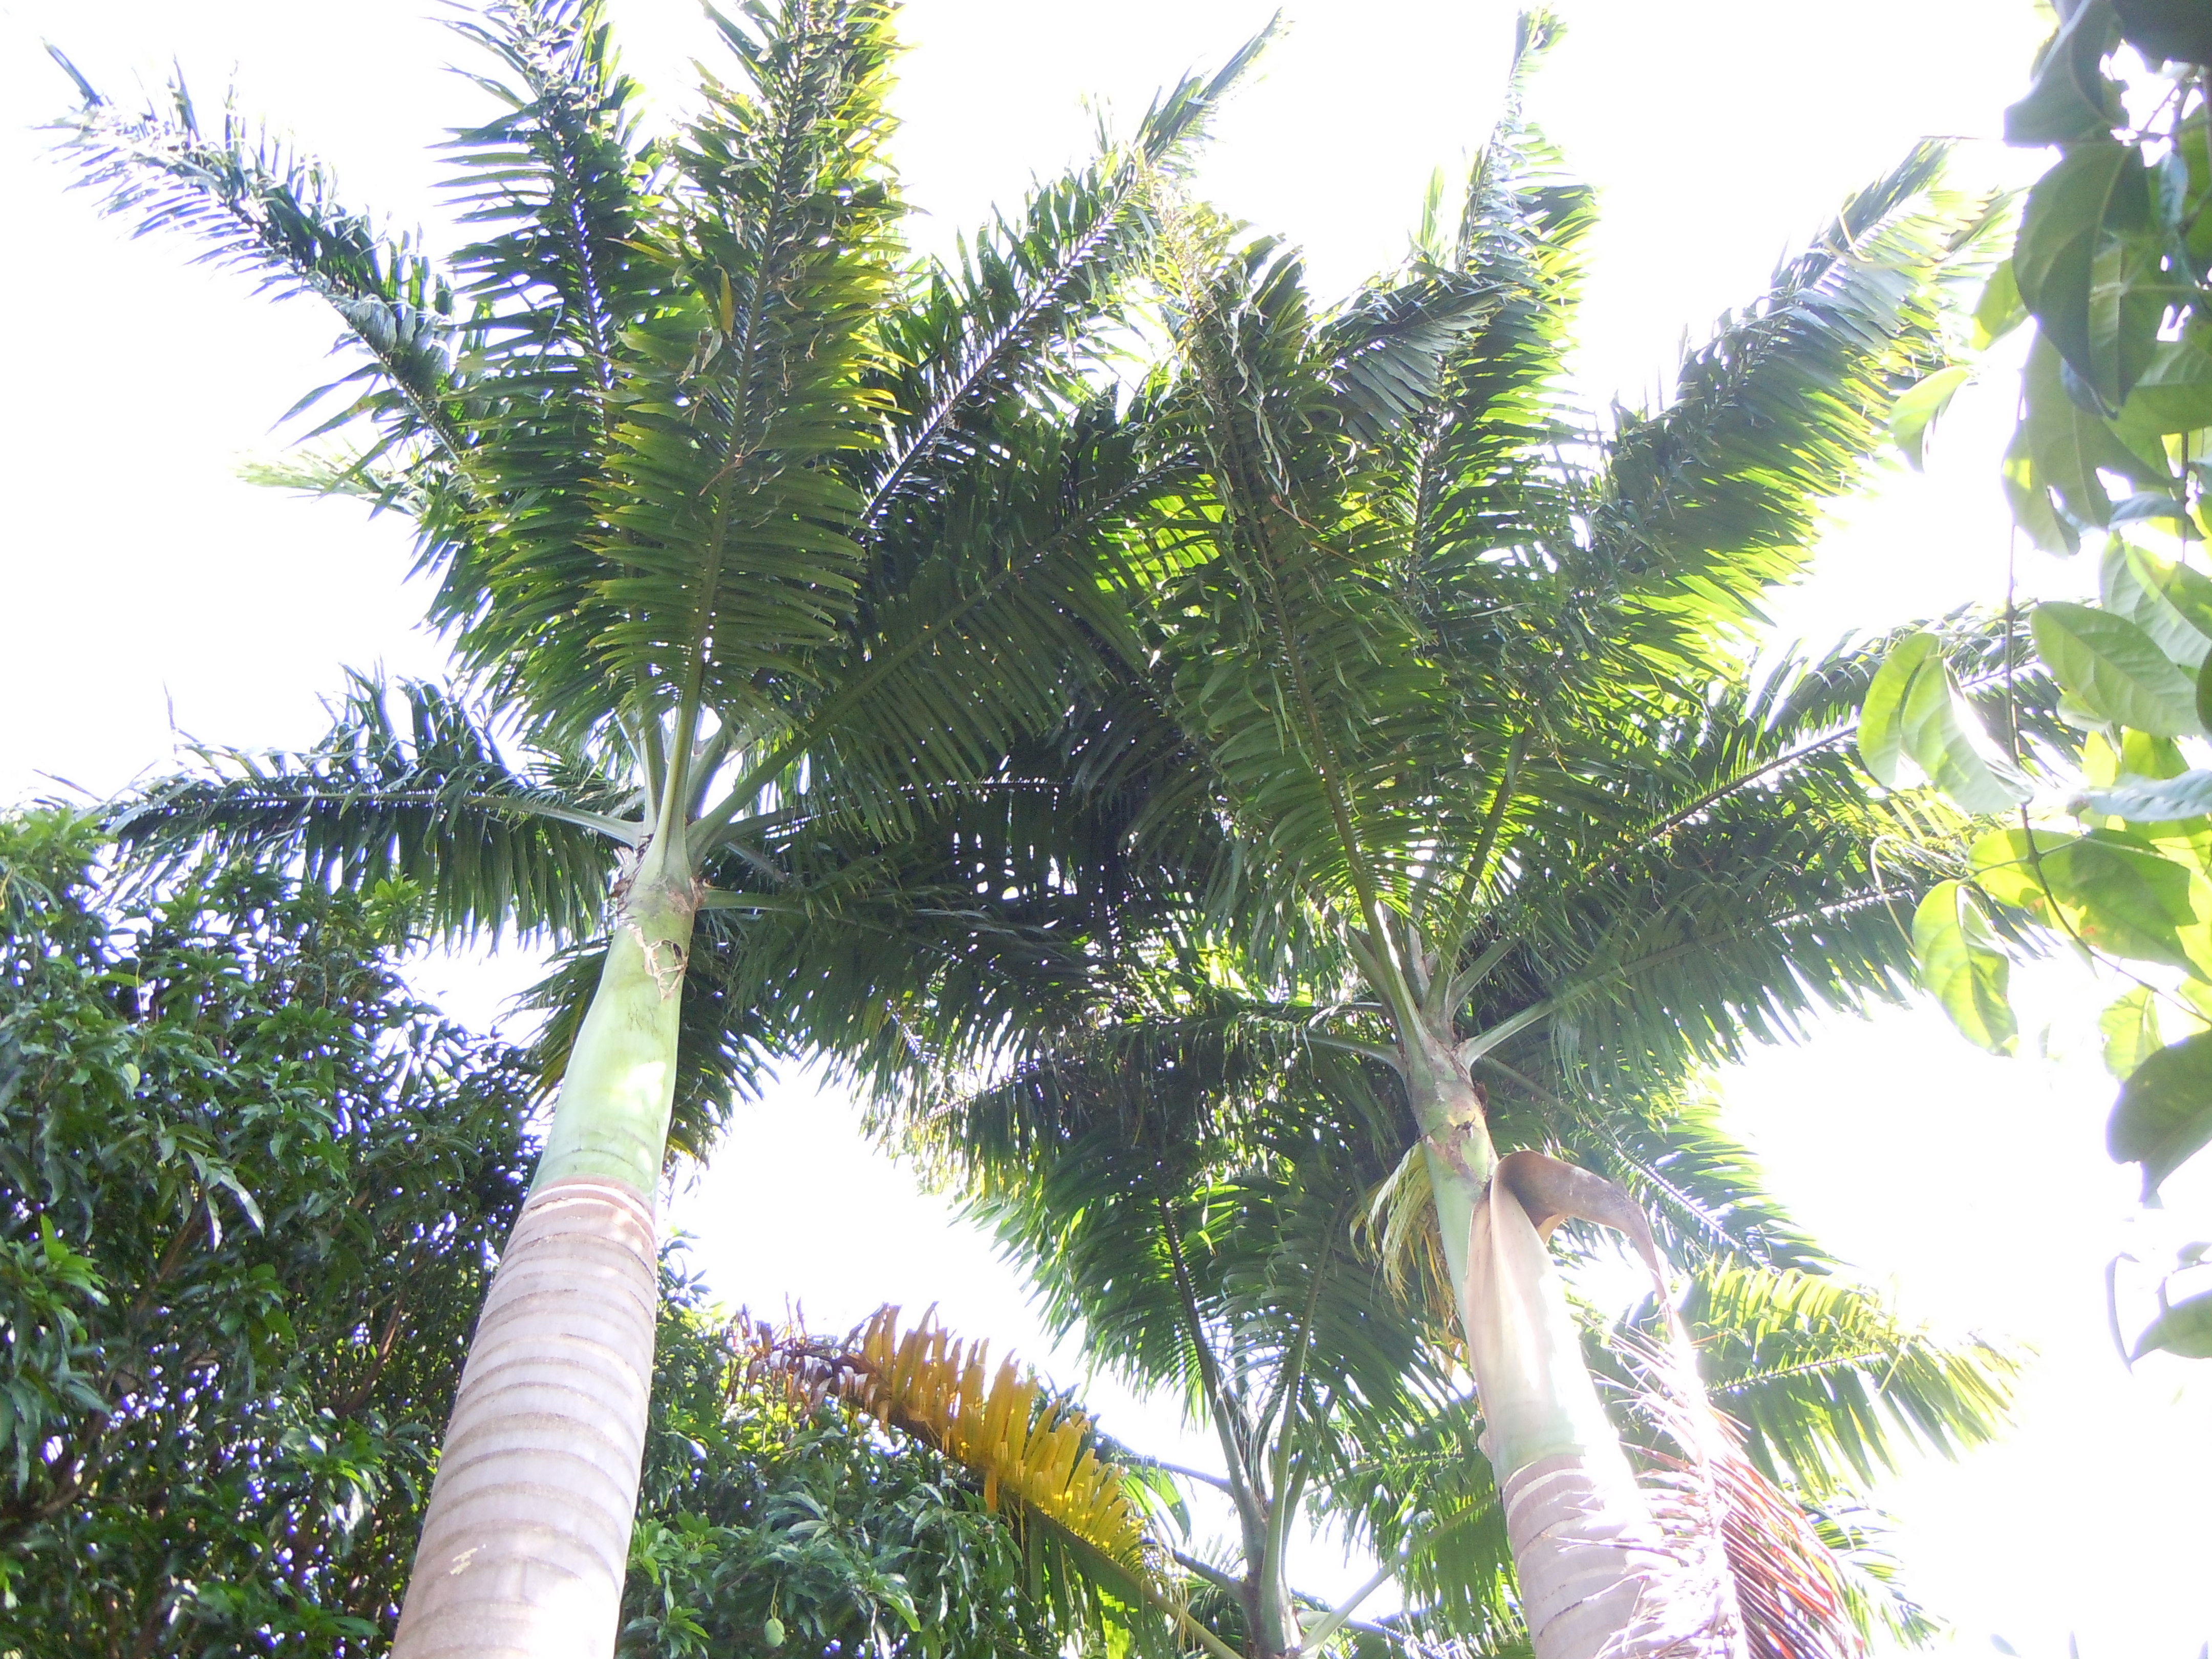 Image of cabbage palm